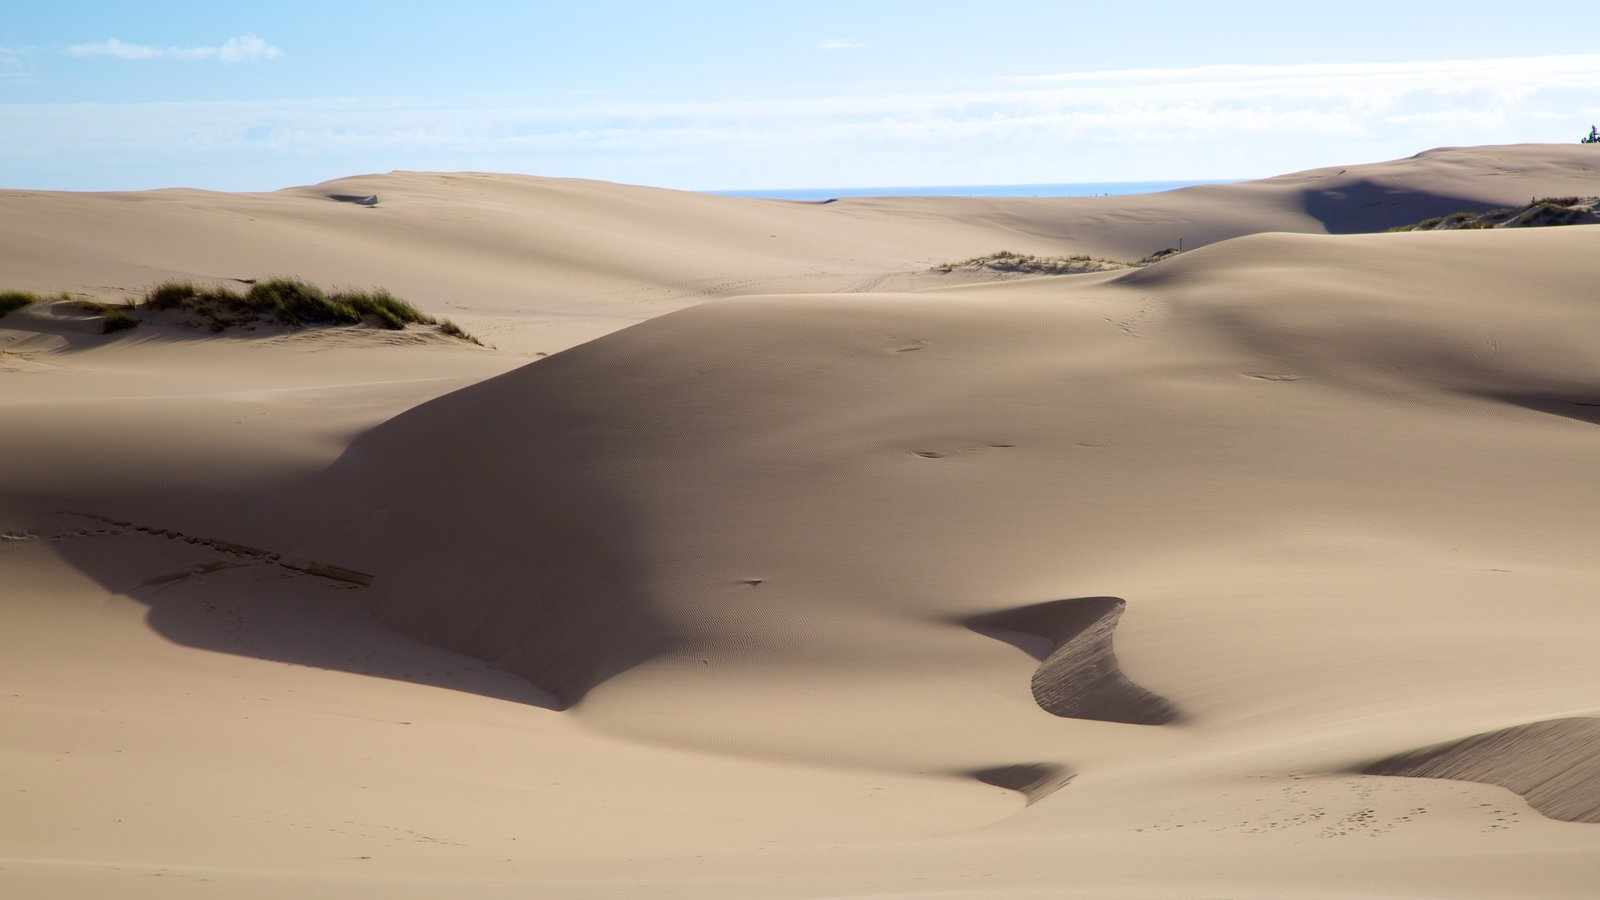 Oregon Dunes National Recreation Area mostrando paisagem e paisagens do deserto